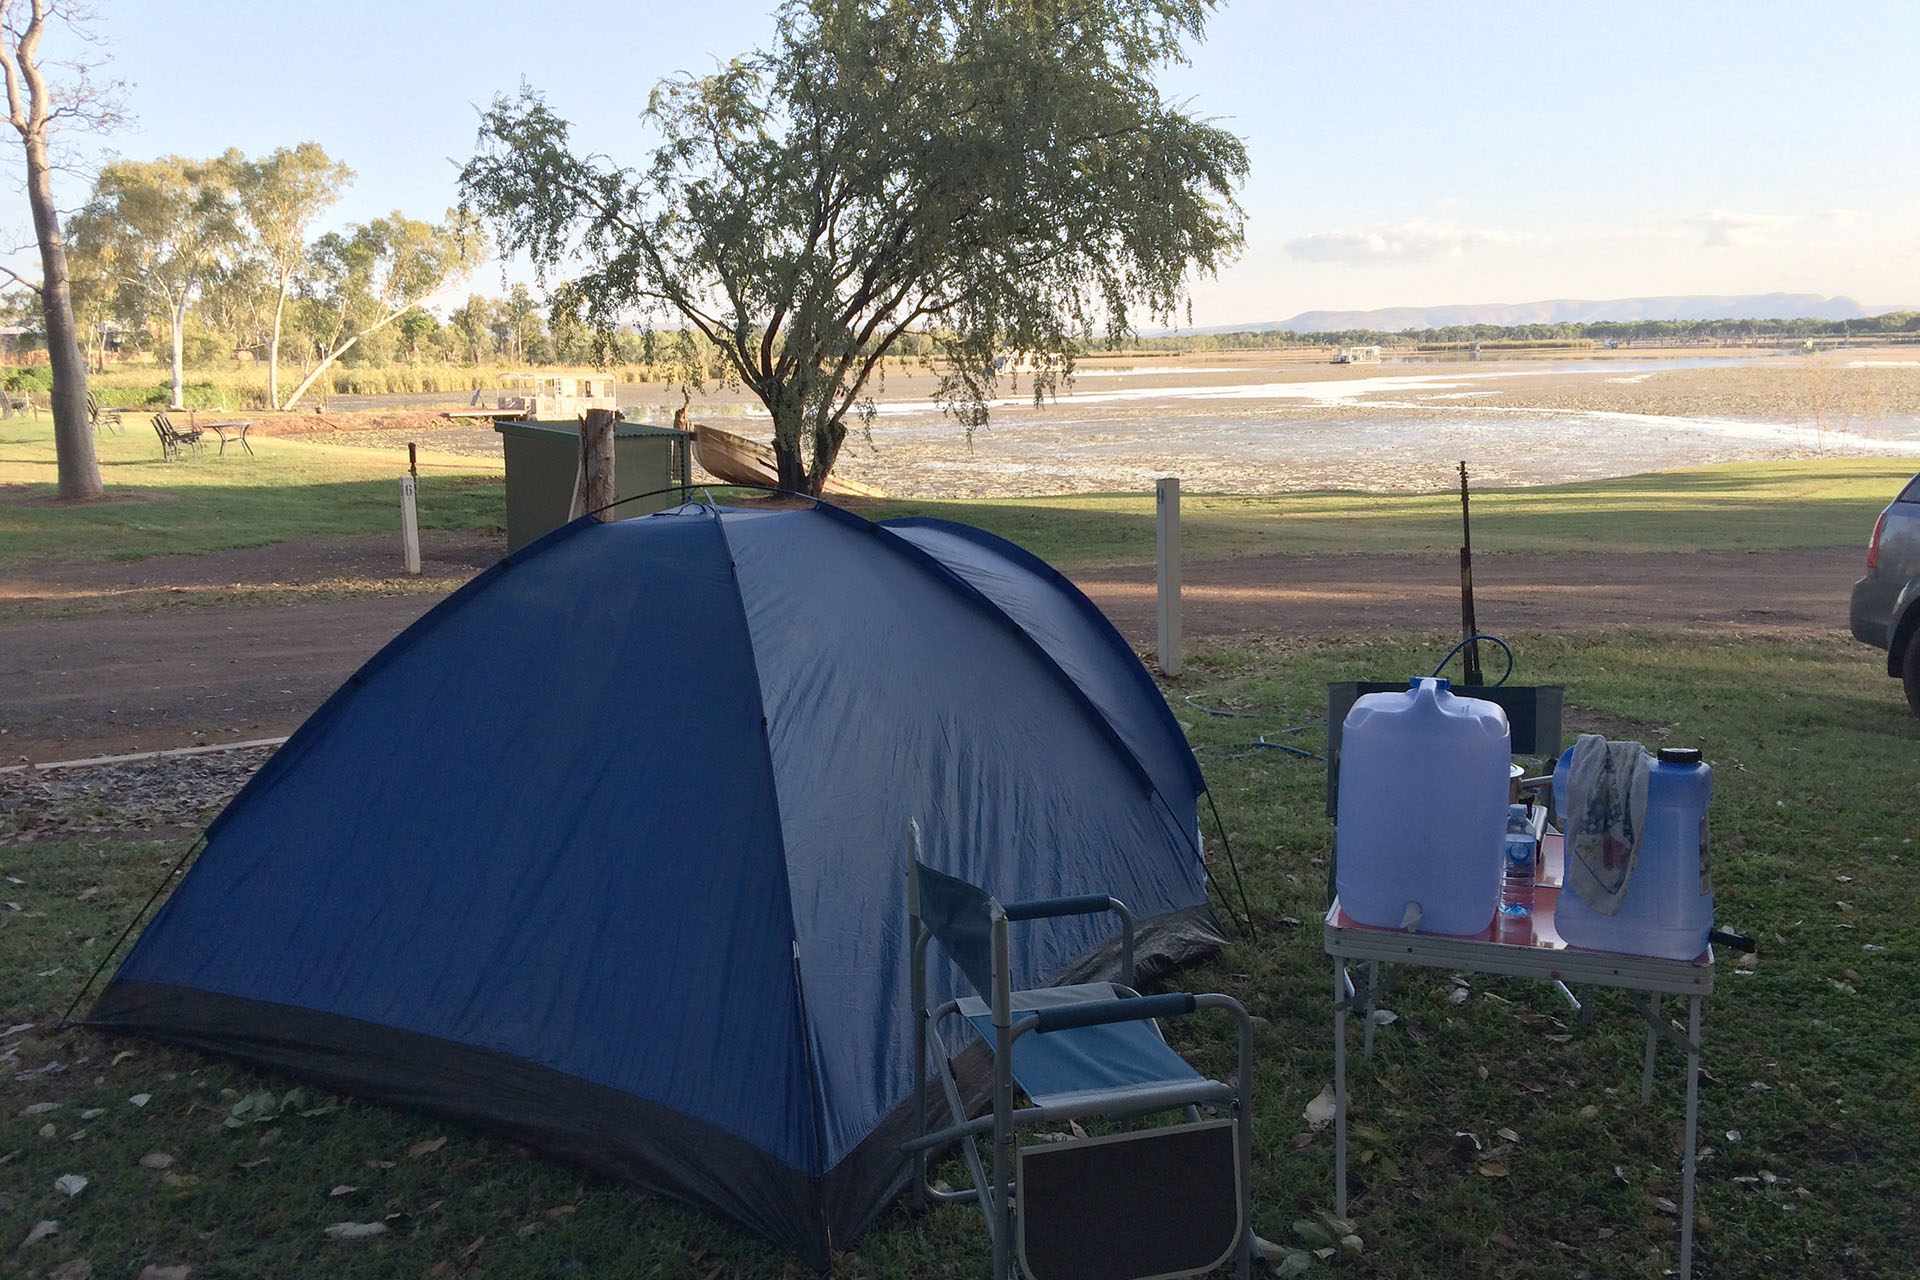 Today's camp on the bank of the Ord River.